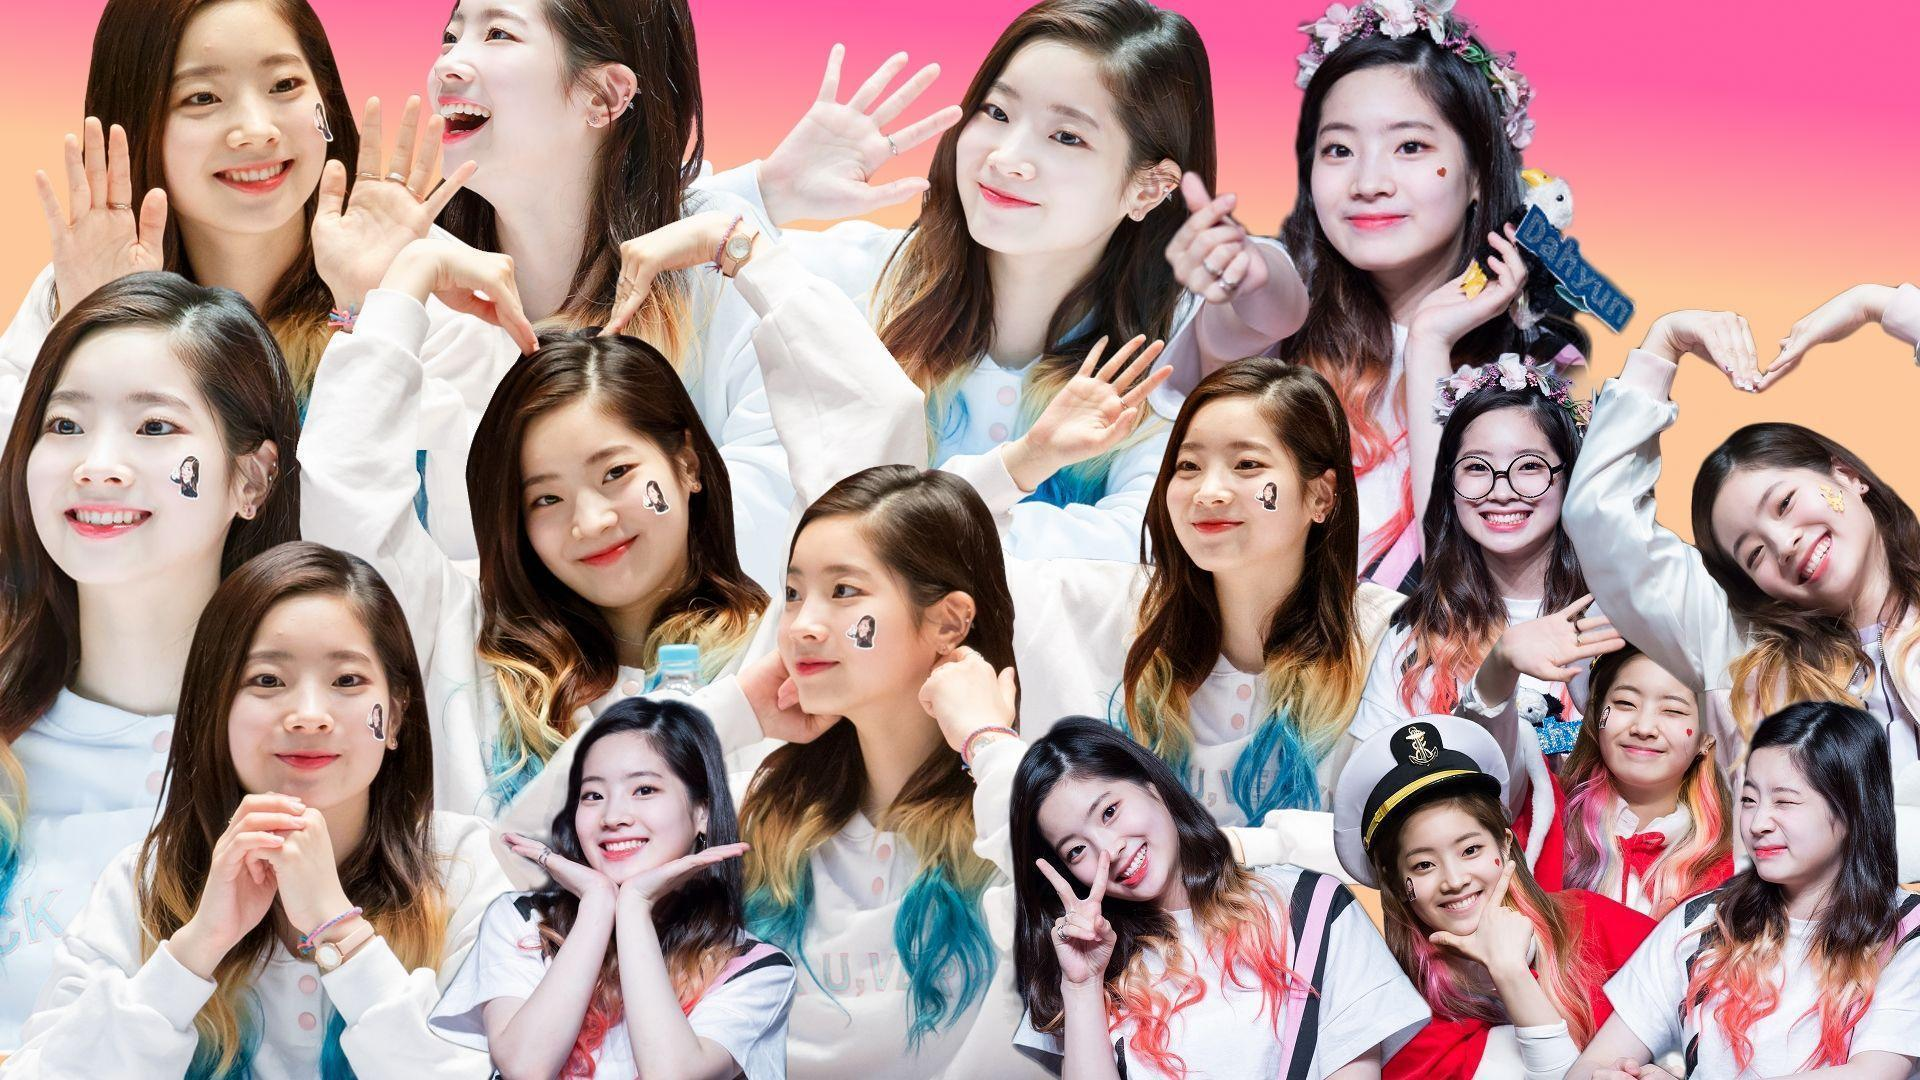 Sana, Tzuyu, and Dahyun collage wallpapers